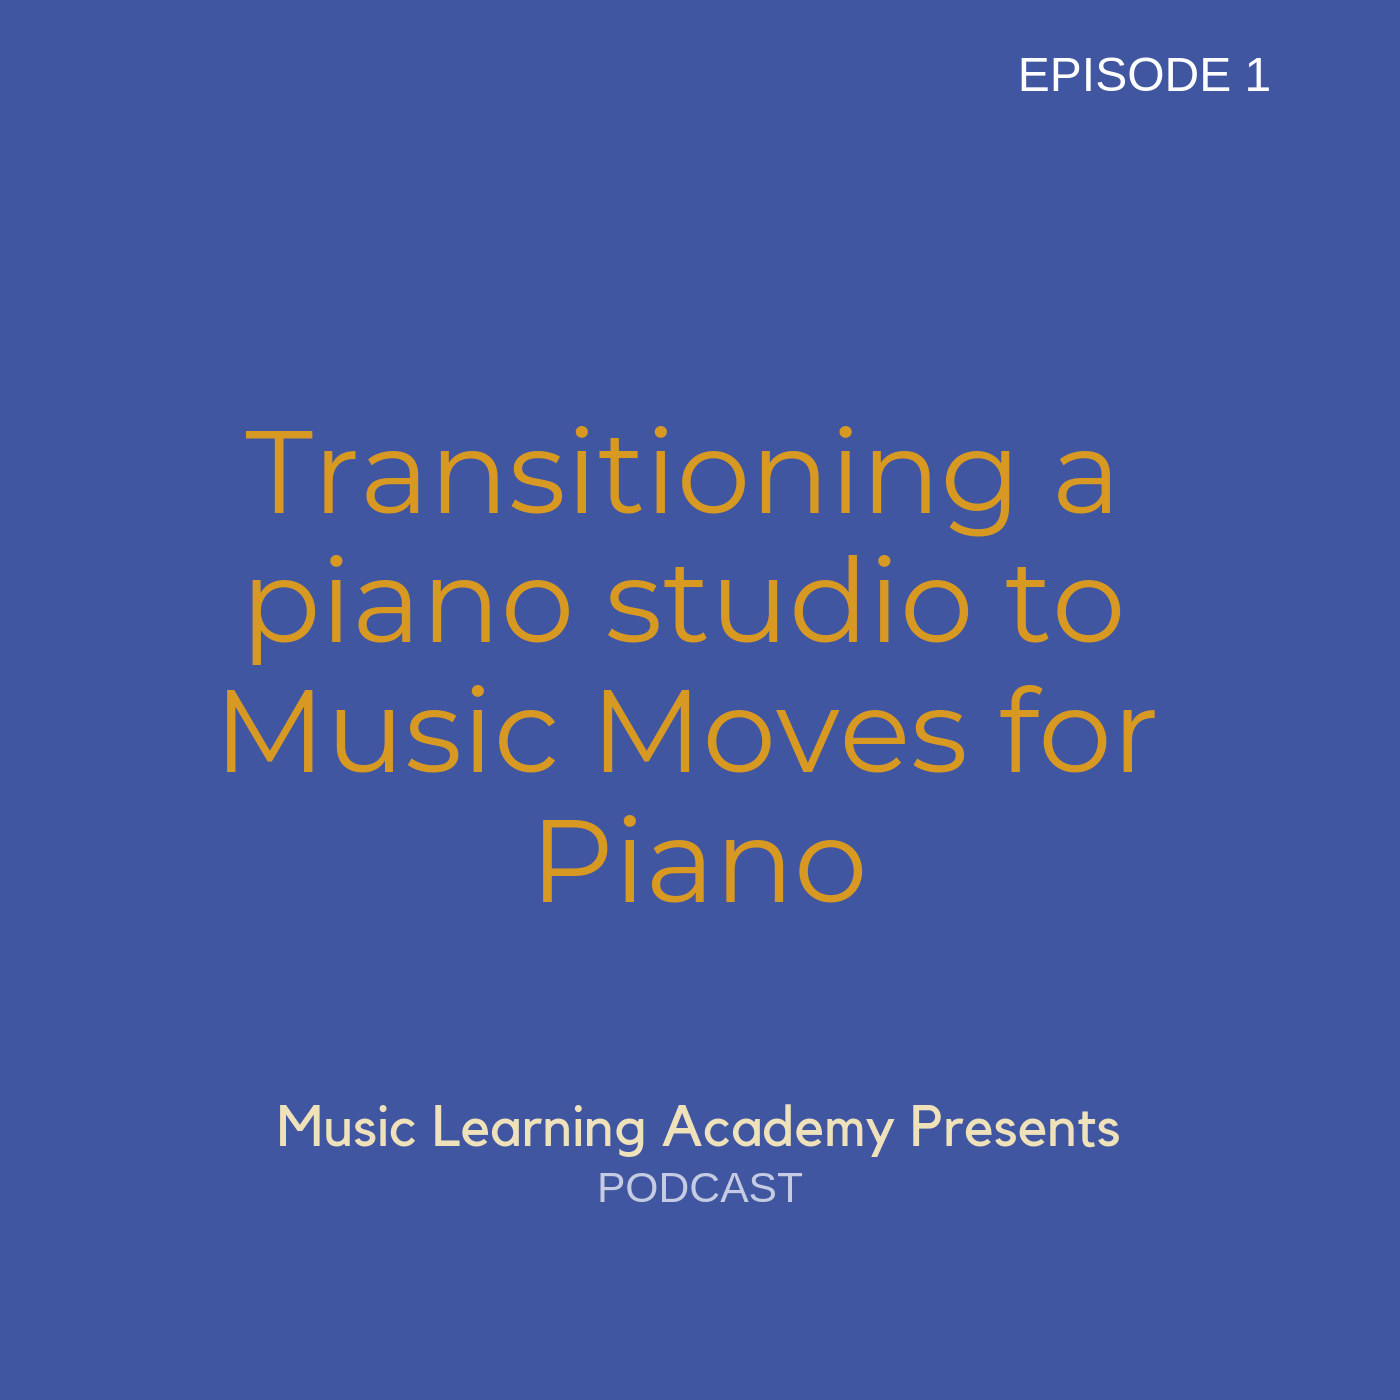 Music Learning Academy presents(1).png